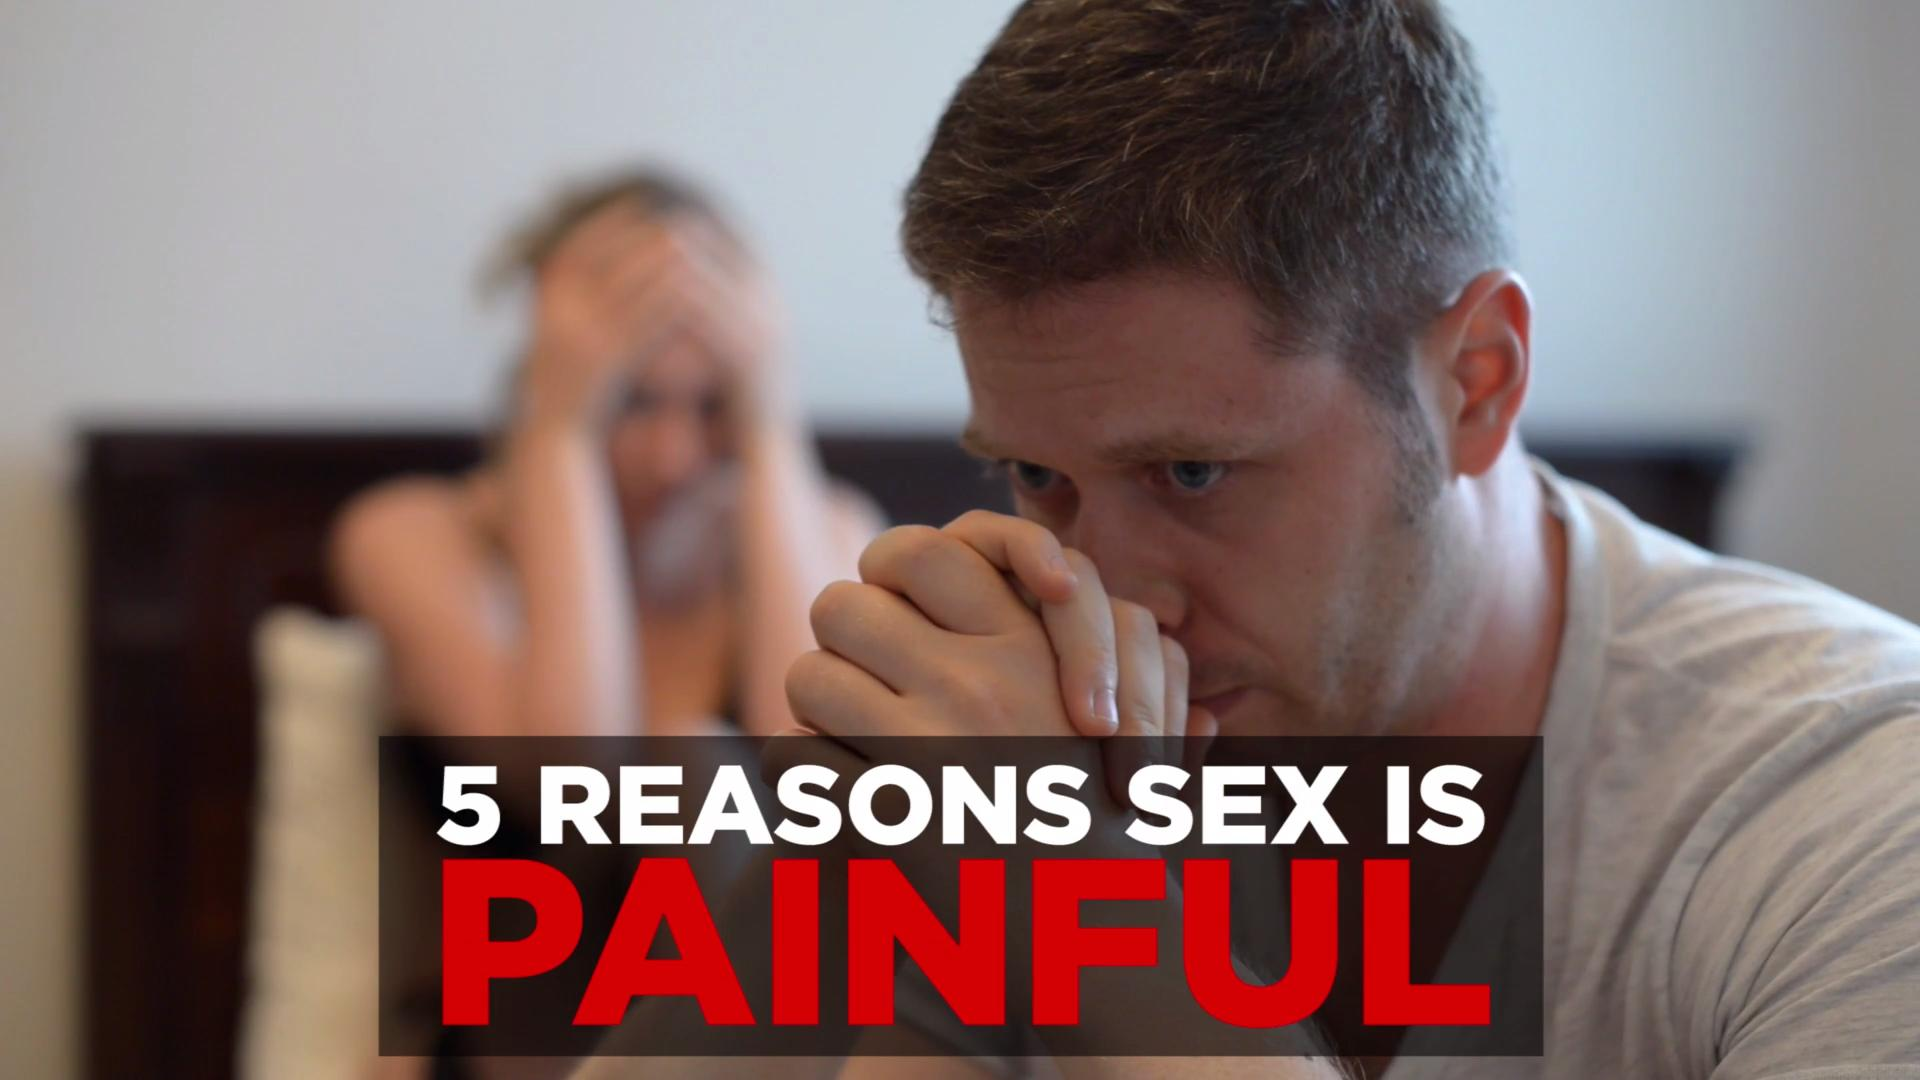 Why sex hurts, and what to do about it